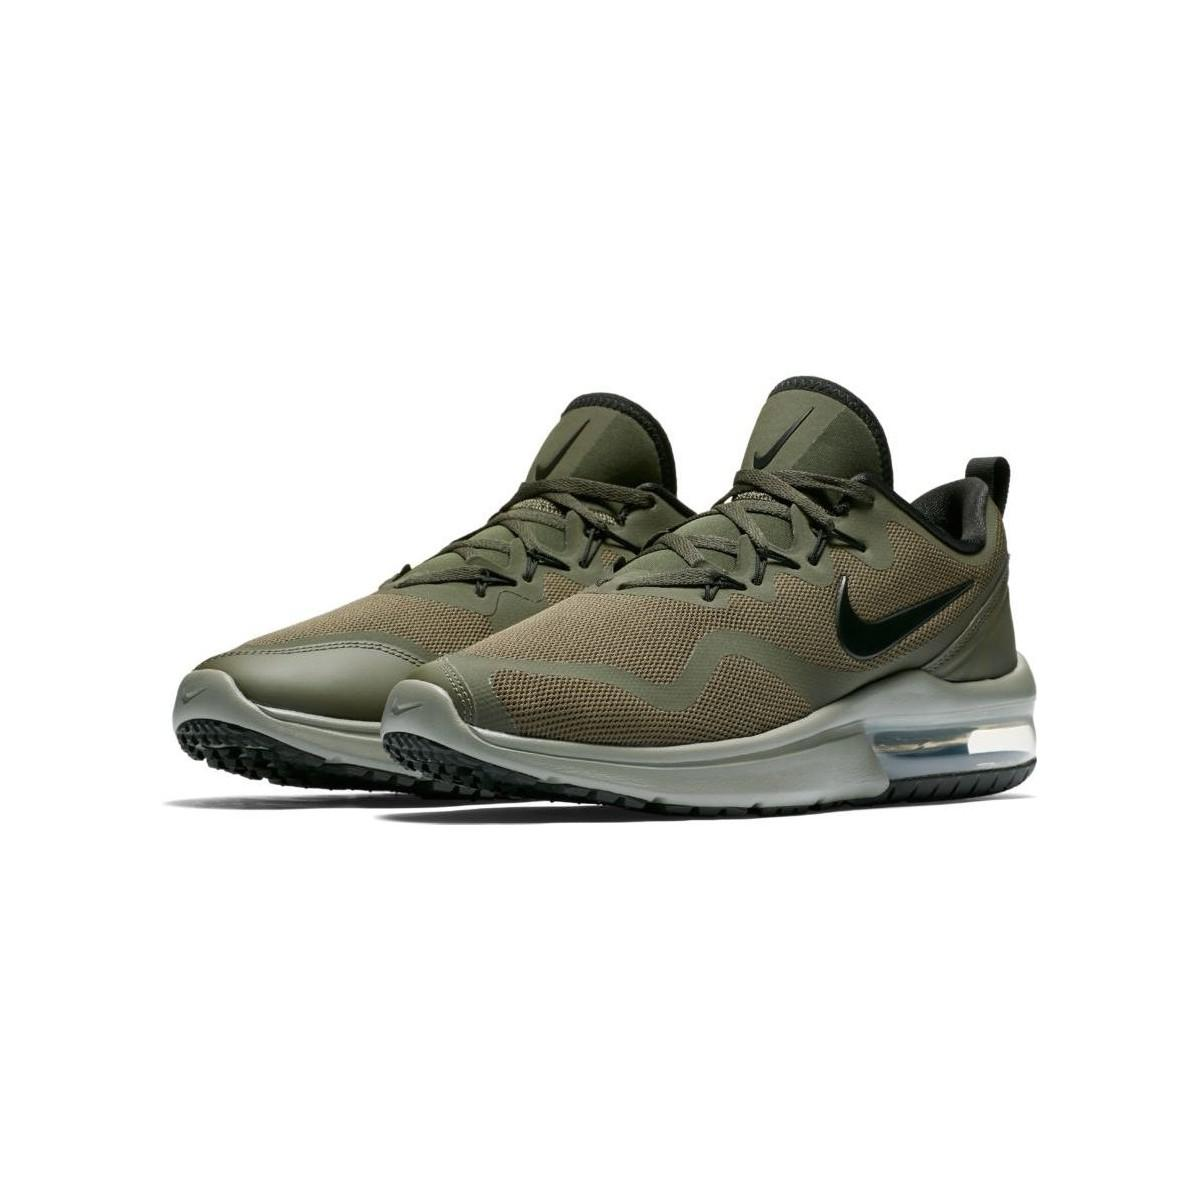 1c4a5481b1ed Nike - Men s Air Max Fury Running Shoe Aa5739 Men s Shoes (trainers) In  Green. View fullscreen